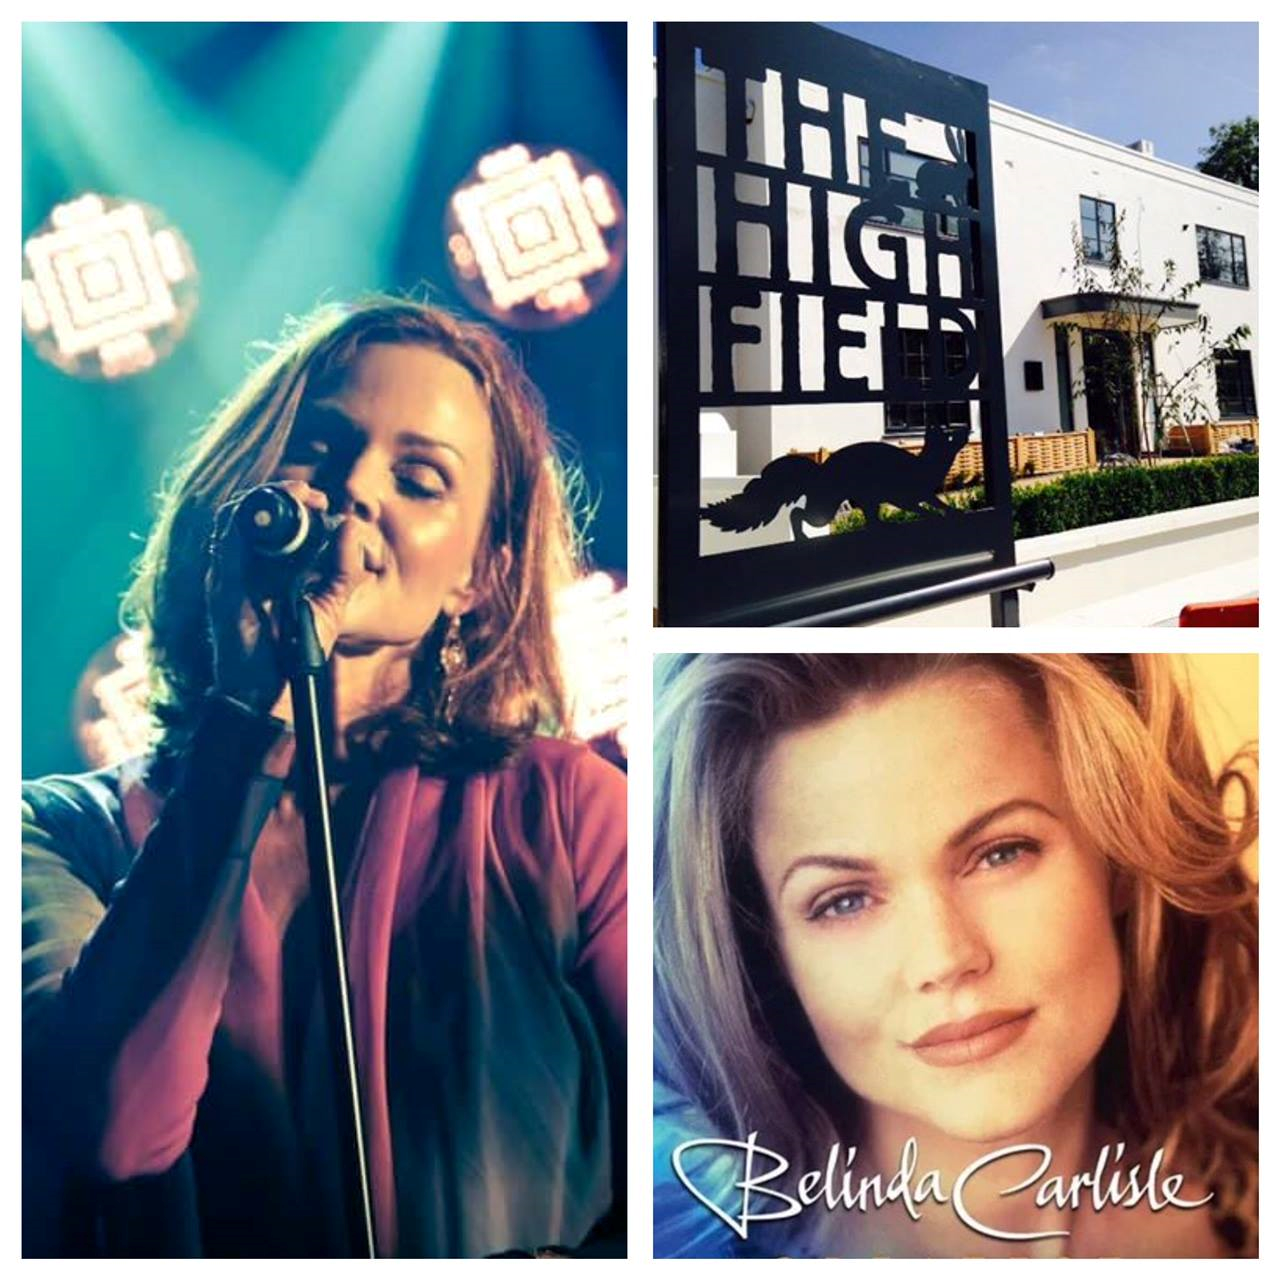 Belinda Carlisle meets The High Field for a Charity Dinner